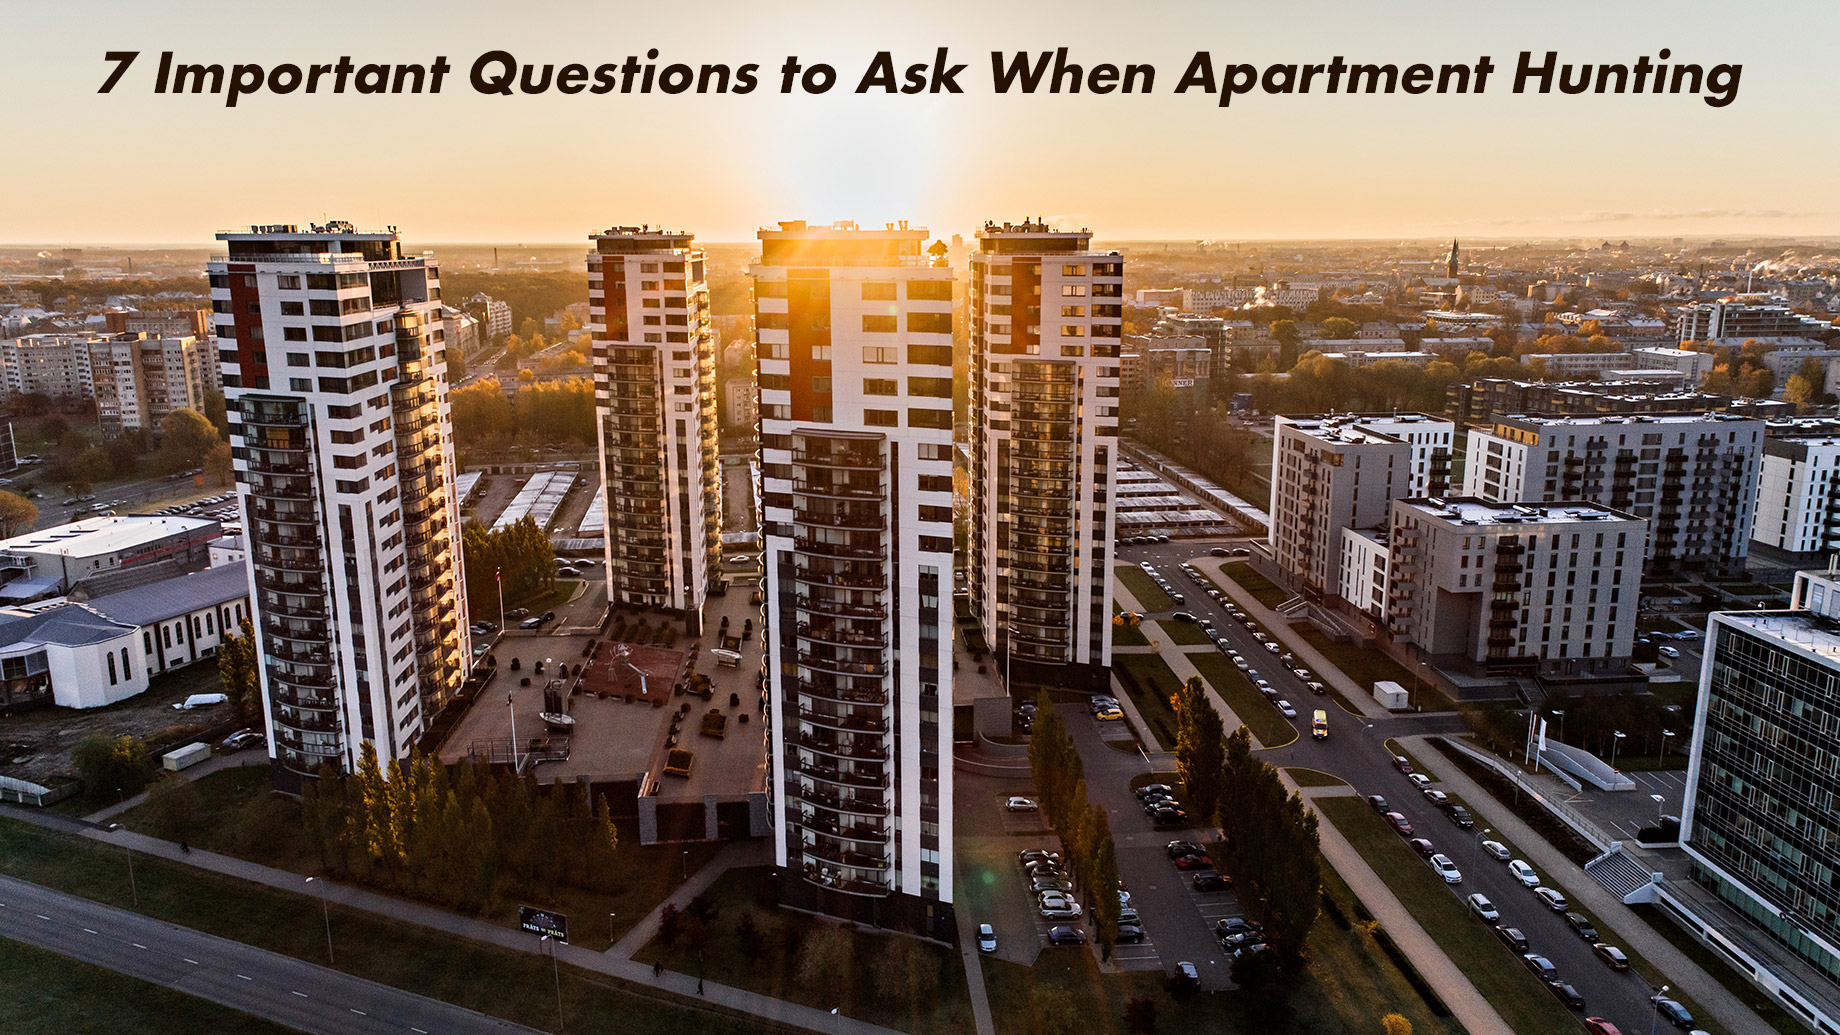 7 Important Questions to Ask When Apartment Hunting